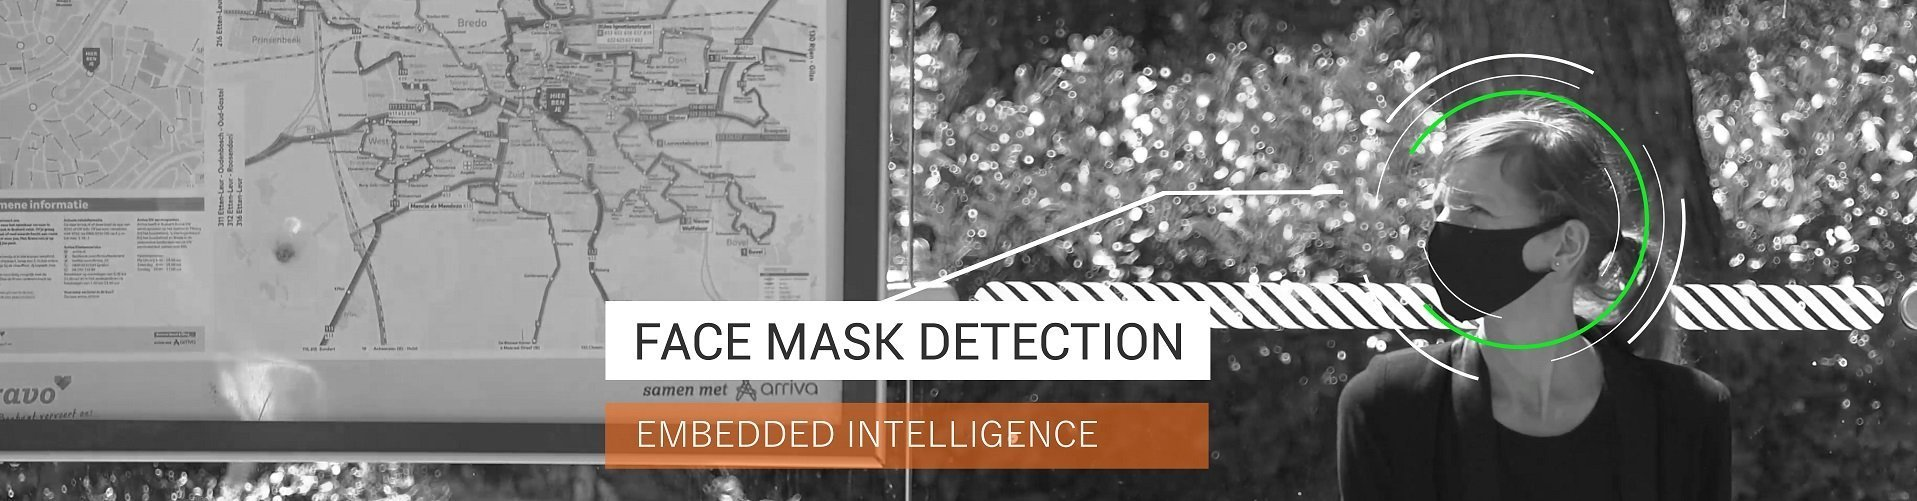 Object detection, tracking and counting